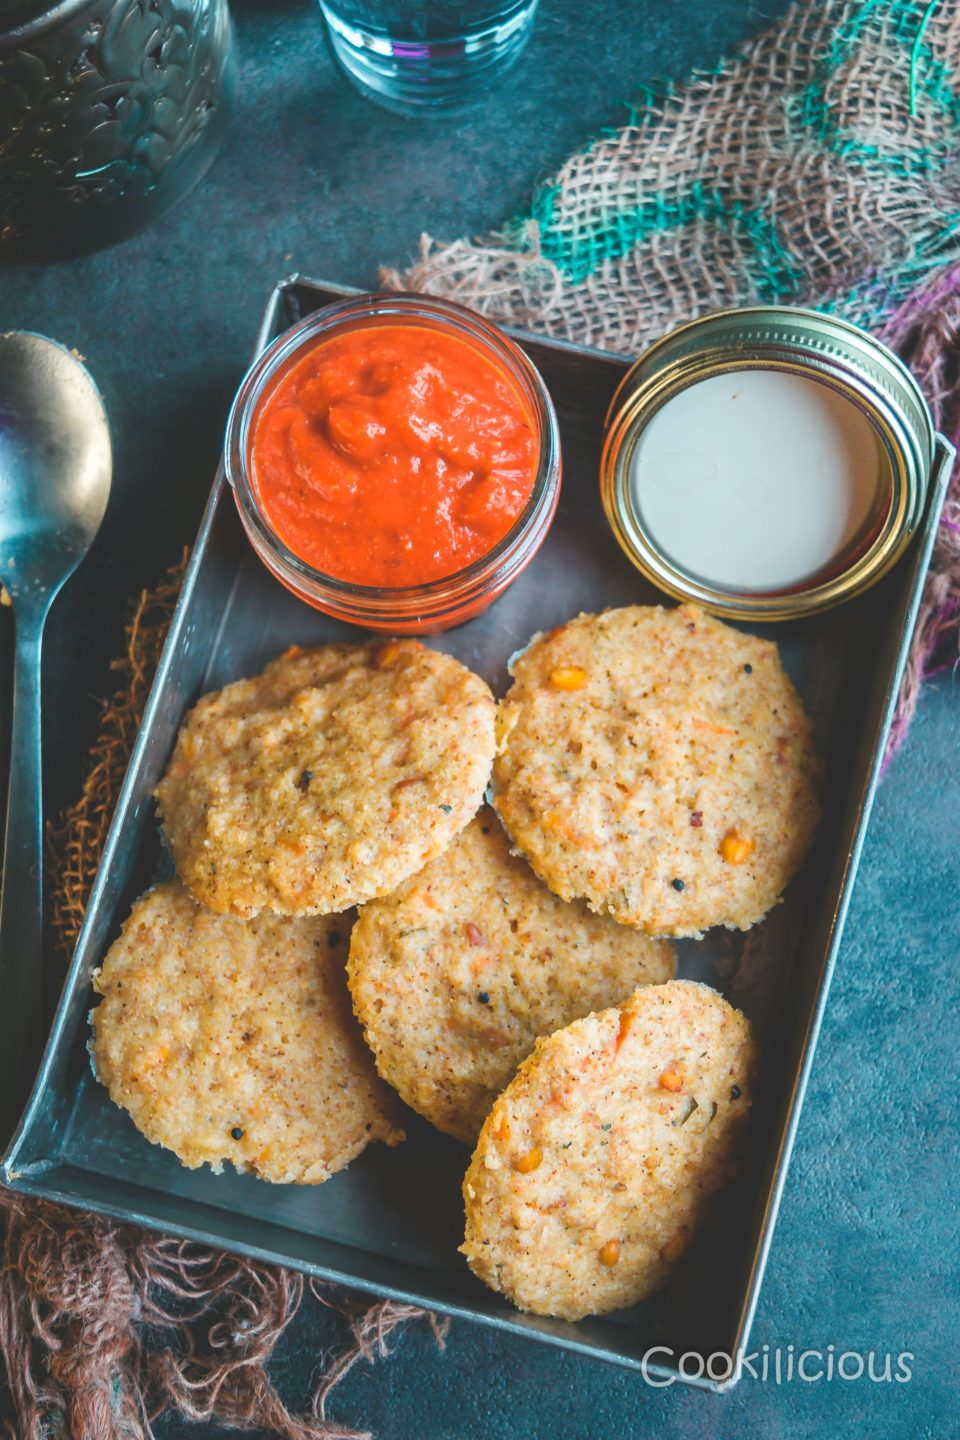 A tin box filled with Instant Sweet Potato & Quinoa Idli/Steamed Cakes